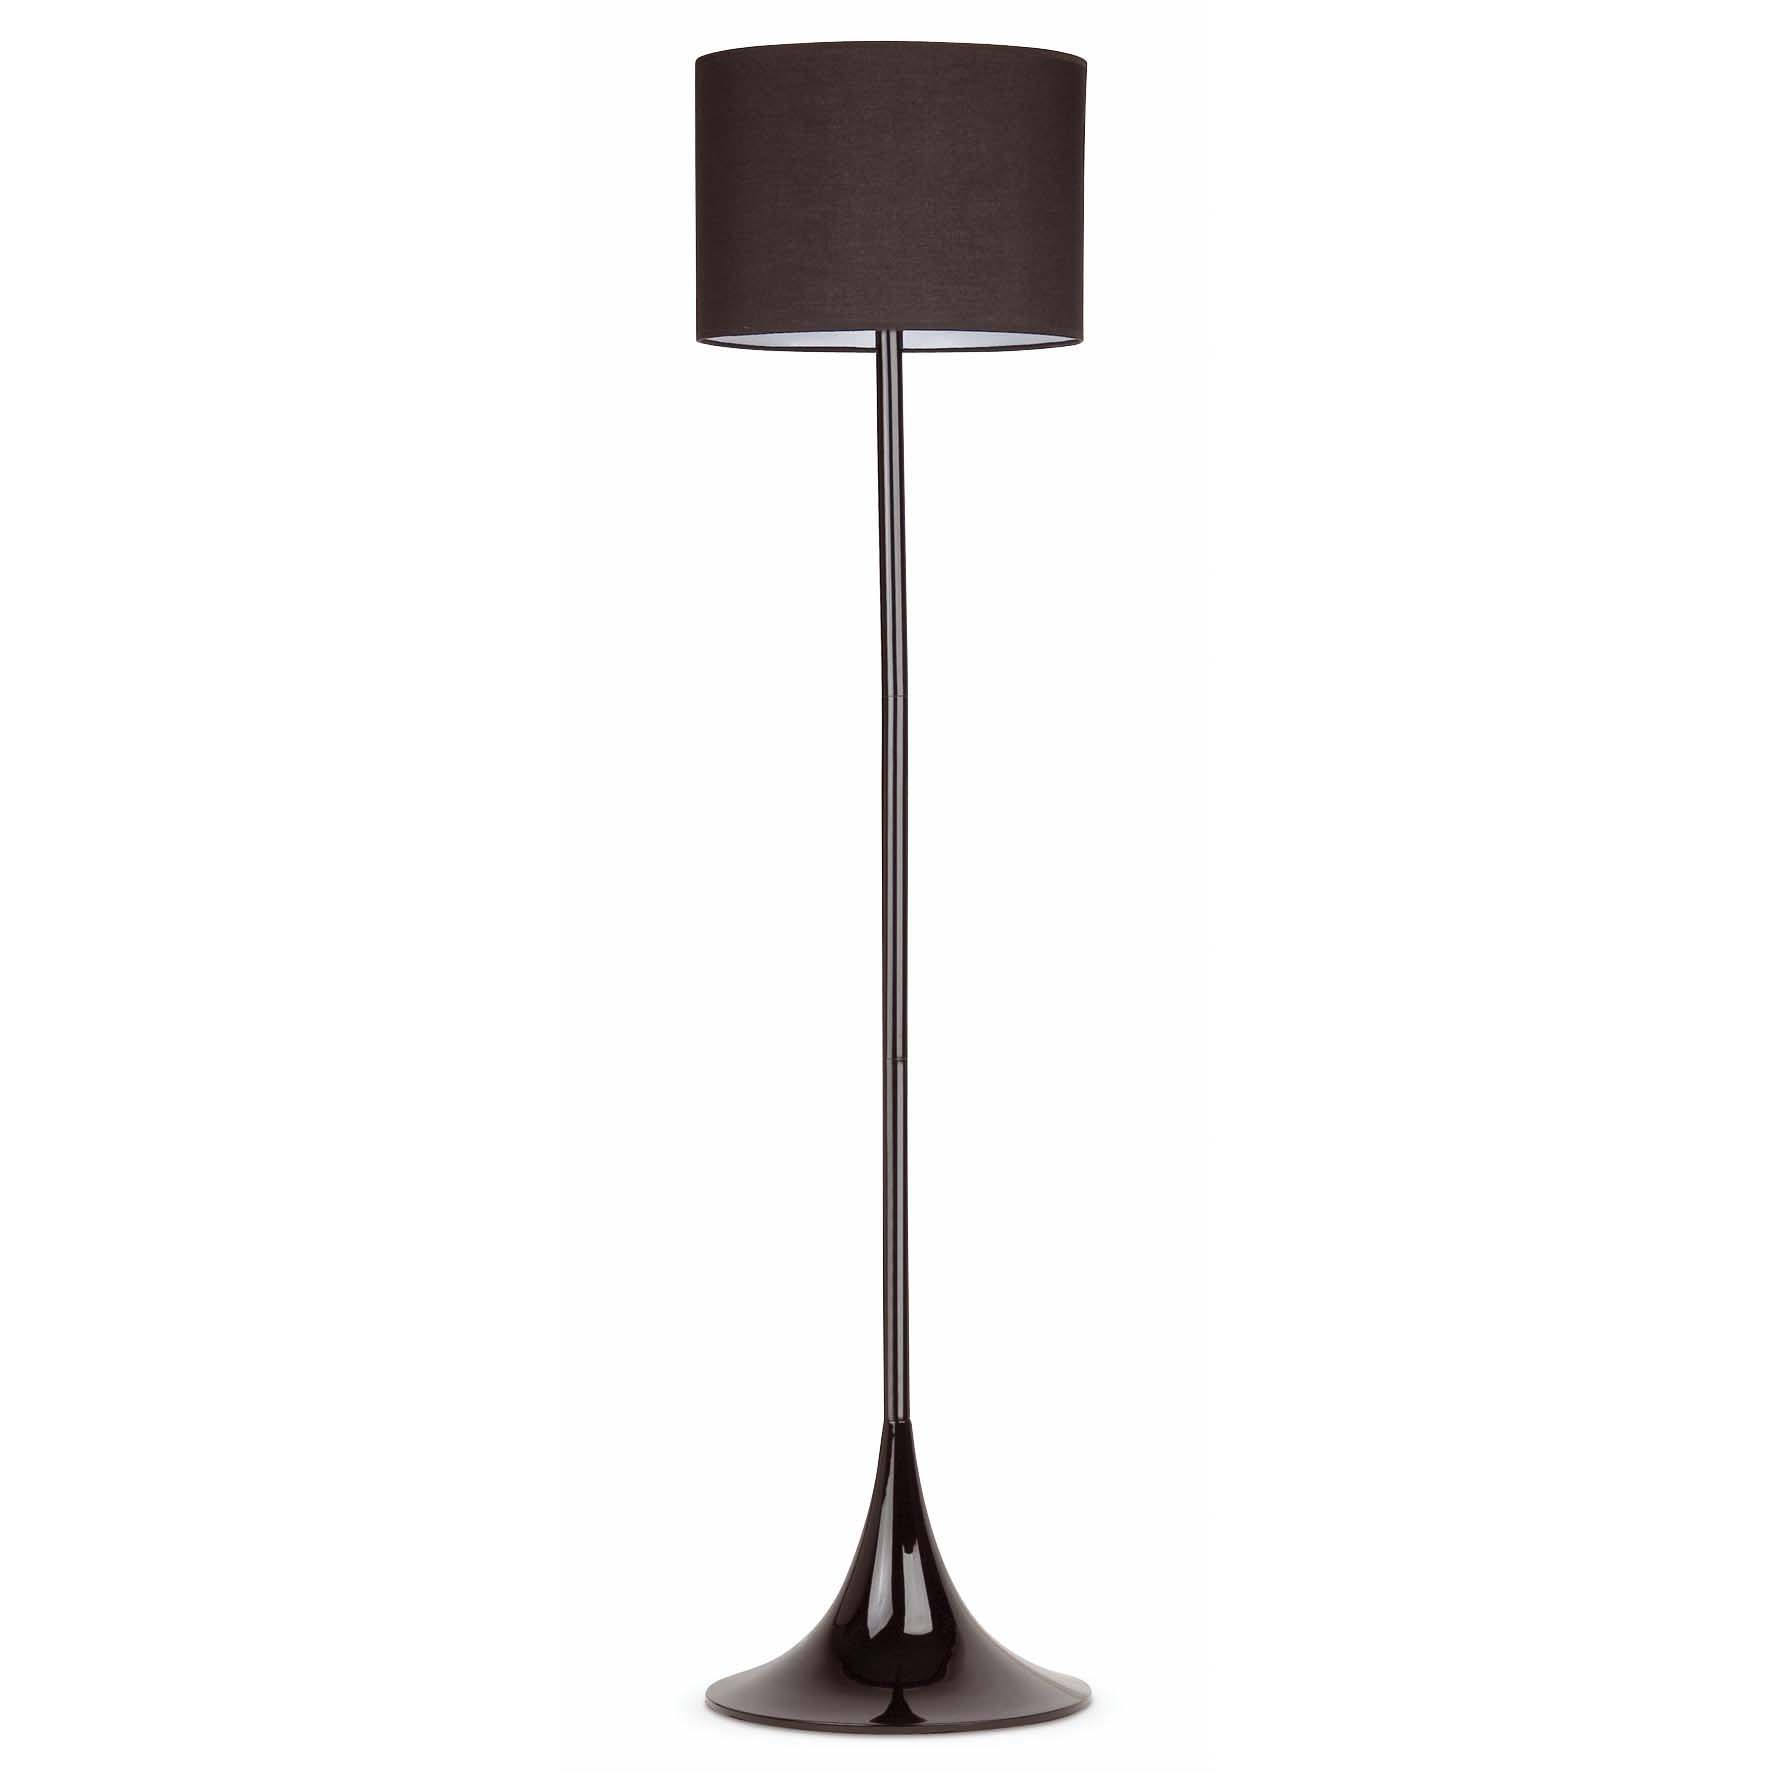 Lampadaire design int rieur black faro noir for Lampadaire interieur design